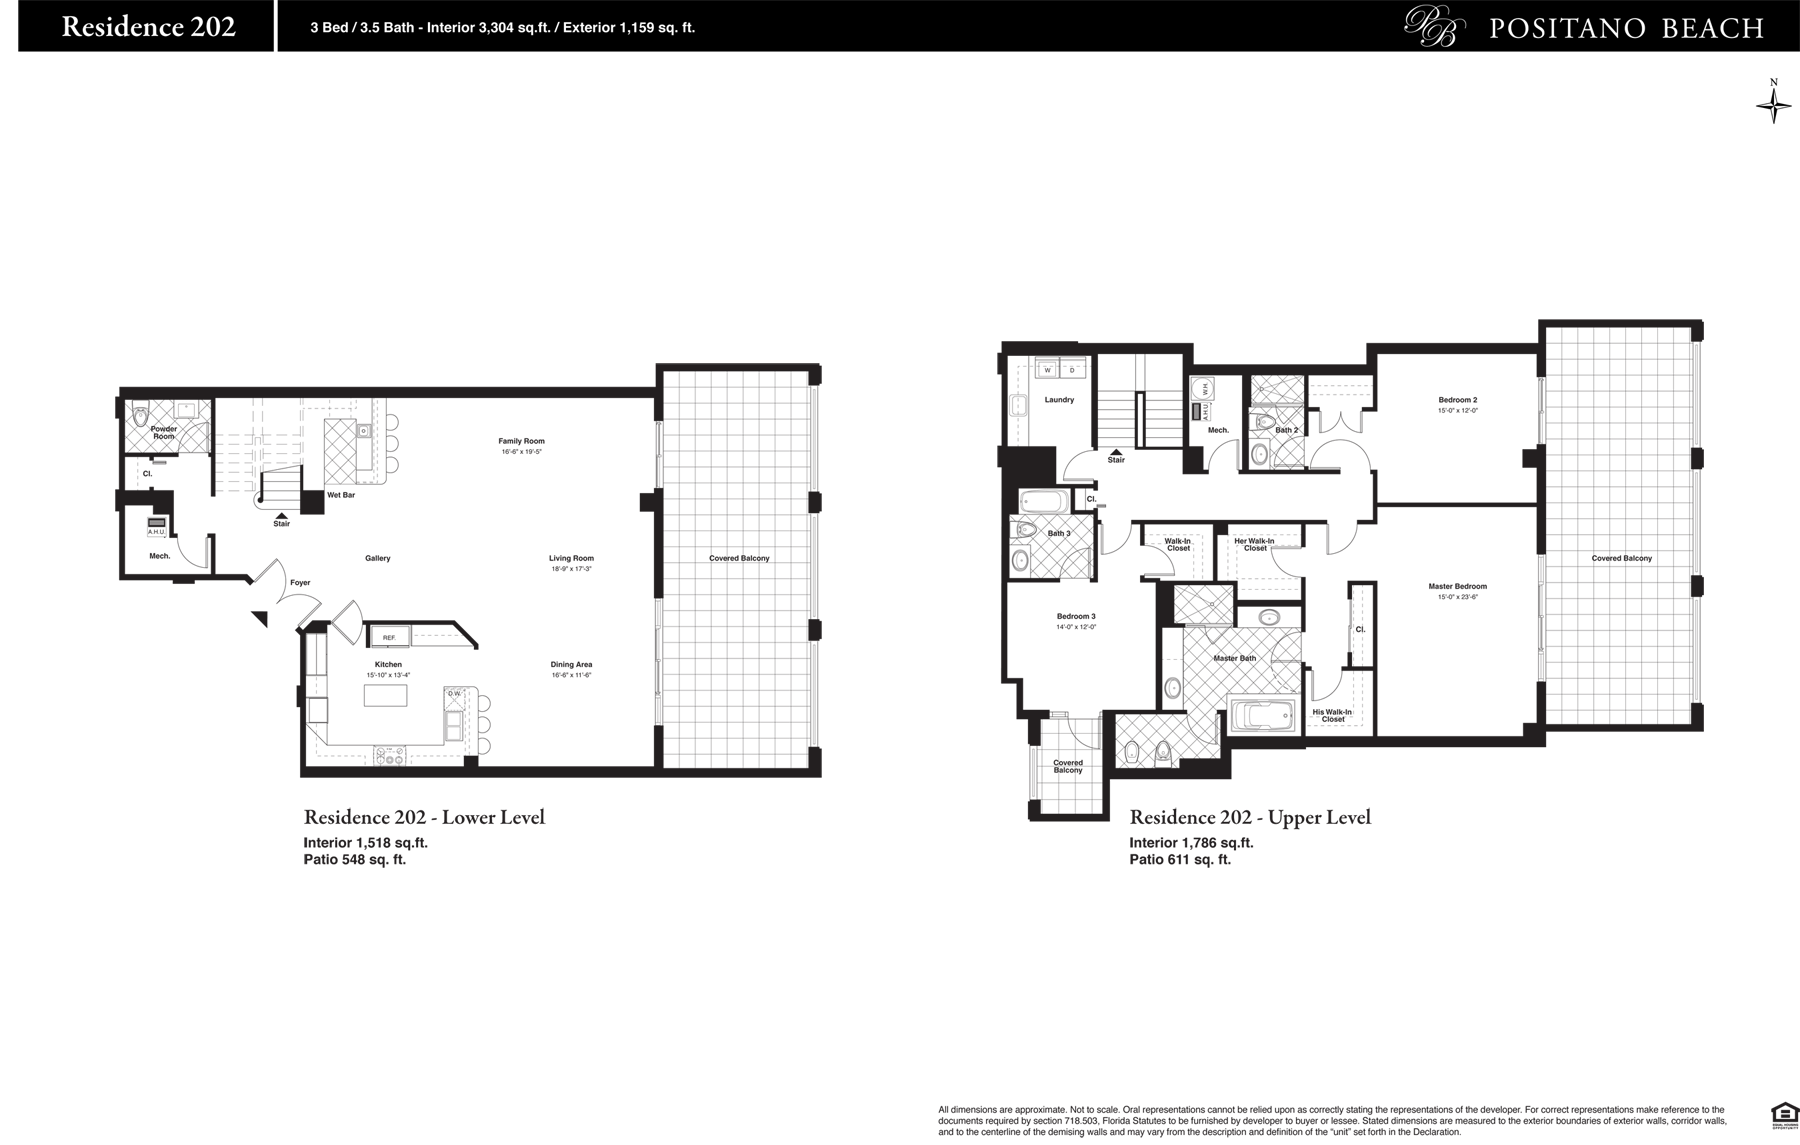 Positano Beach - Floorplan 1